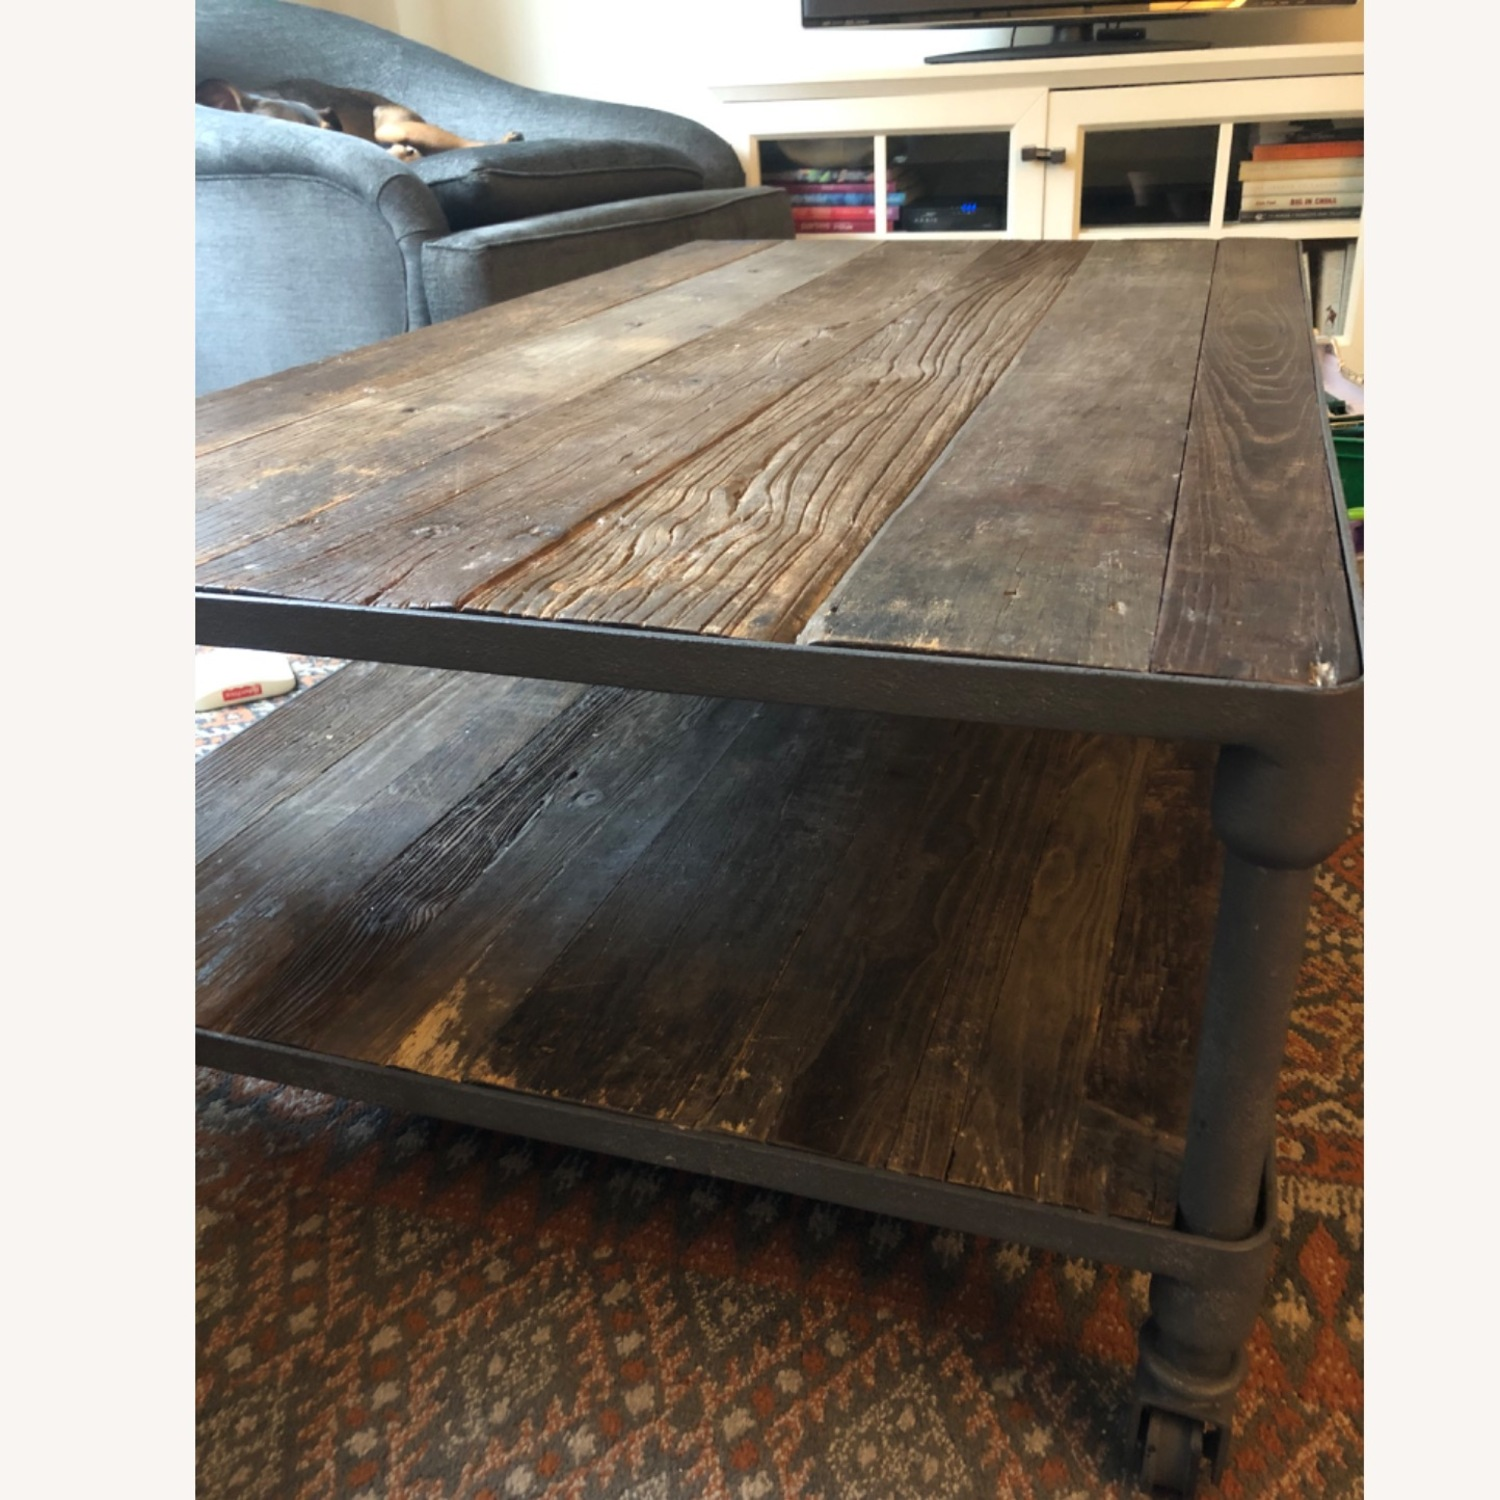 Restoration Hardware Dutch Industrial Coffee Table - image-2